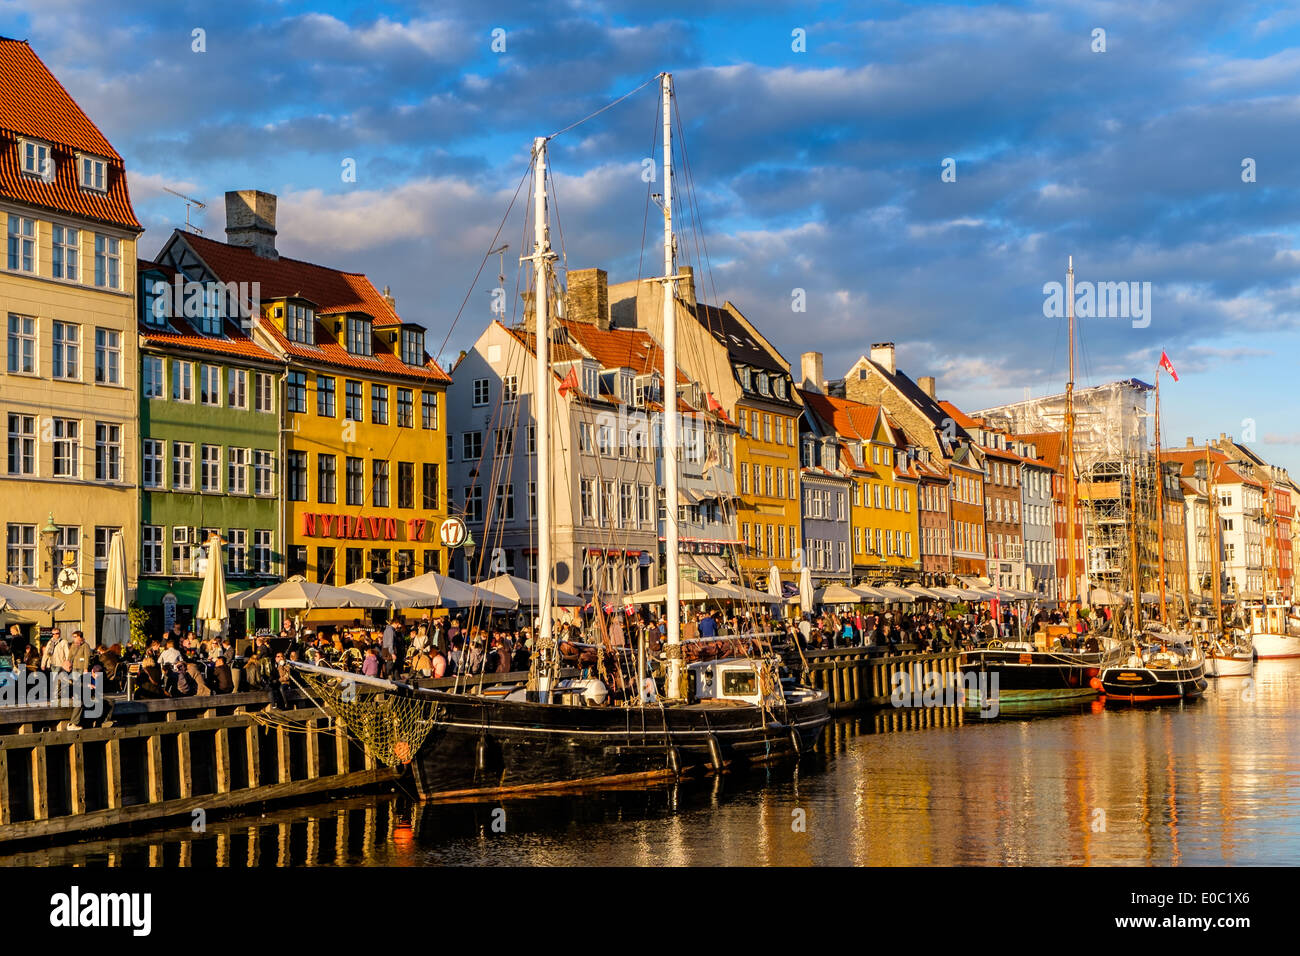 Nyhavn canal and entertainment district, Copenhagen, Denmark - Stock Image